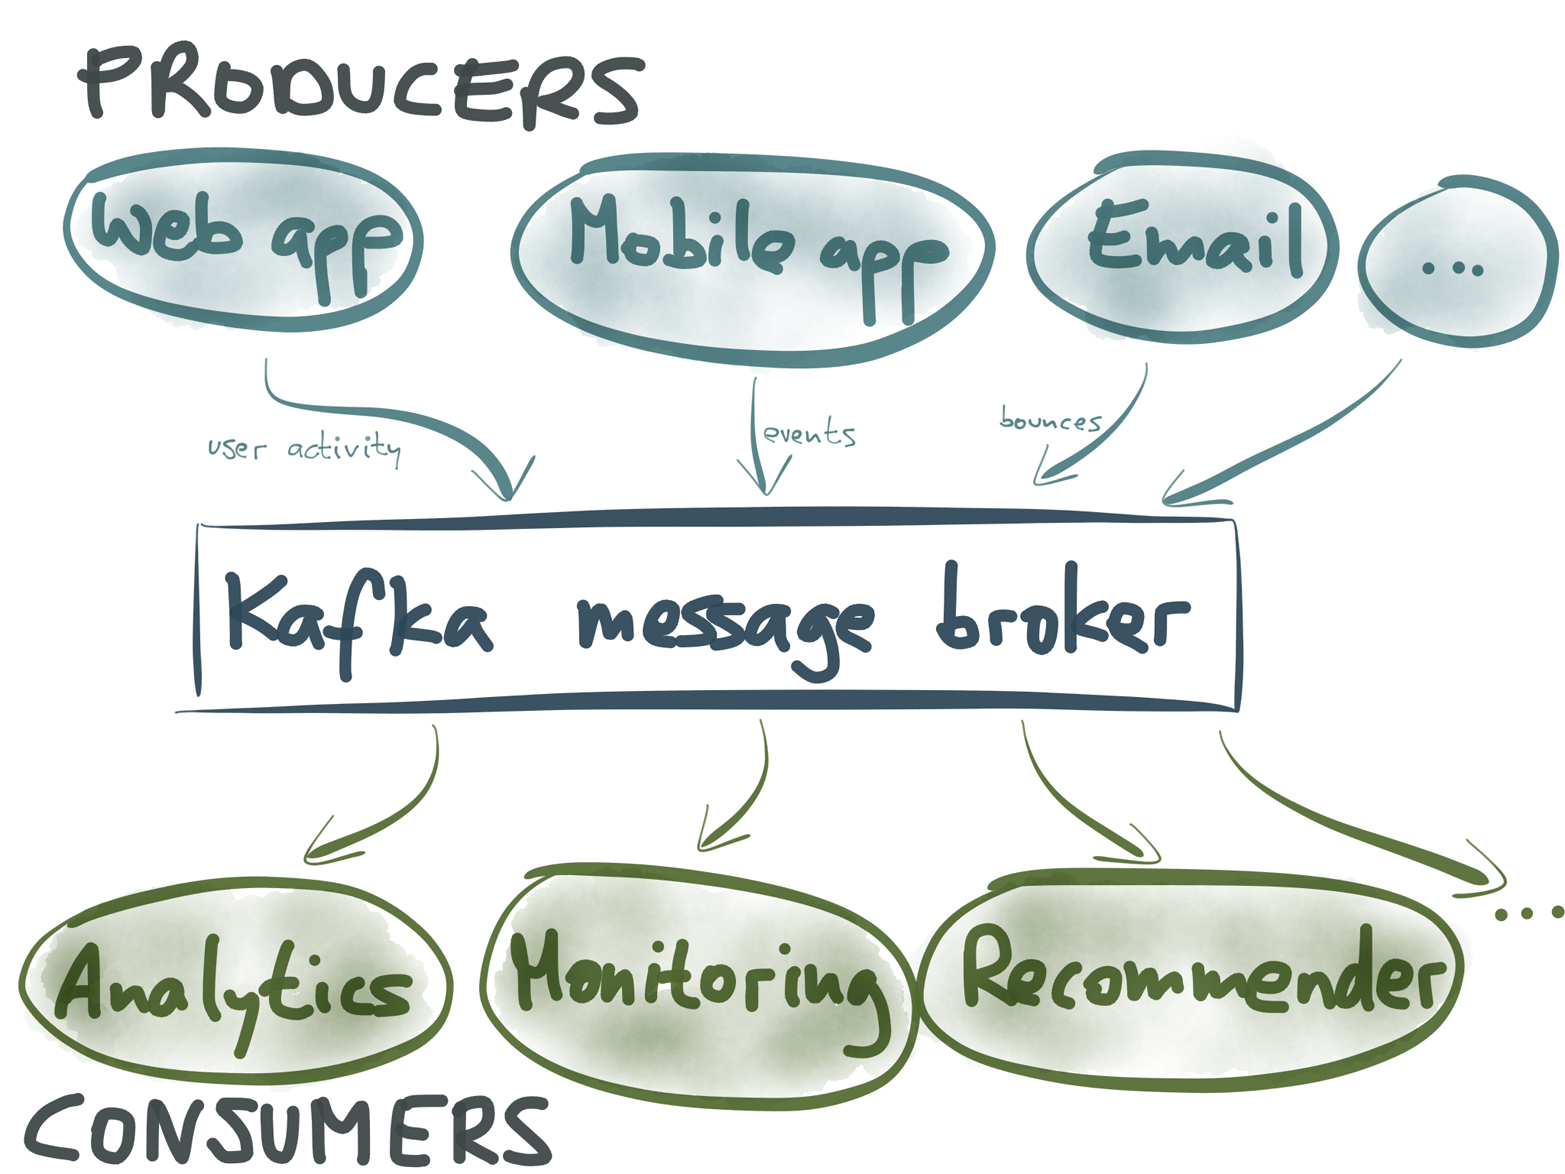 Kafka is typically used as a message broker for publish-subscribe event streams.